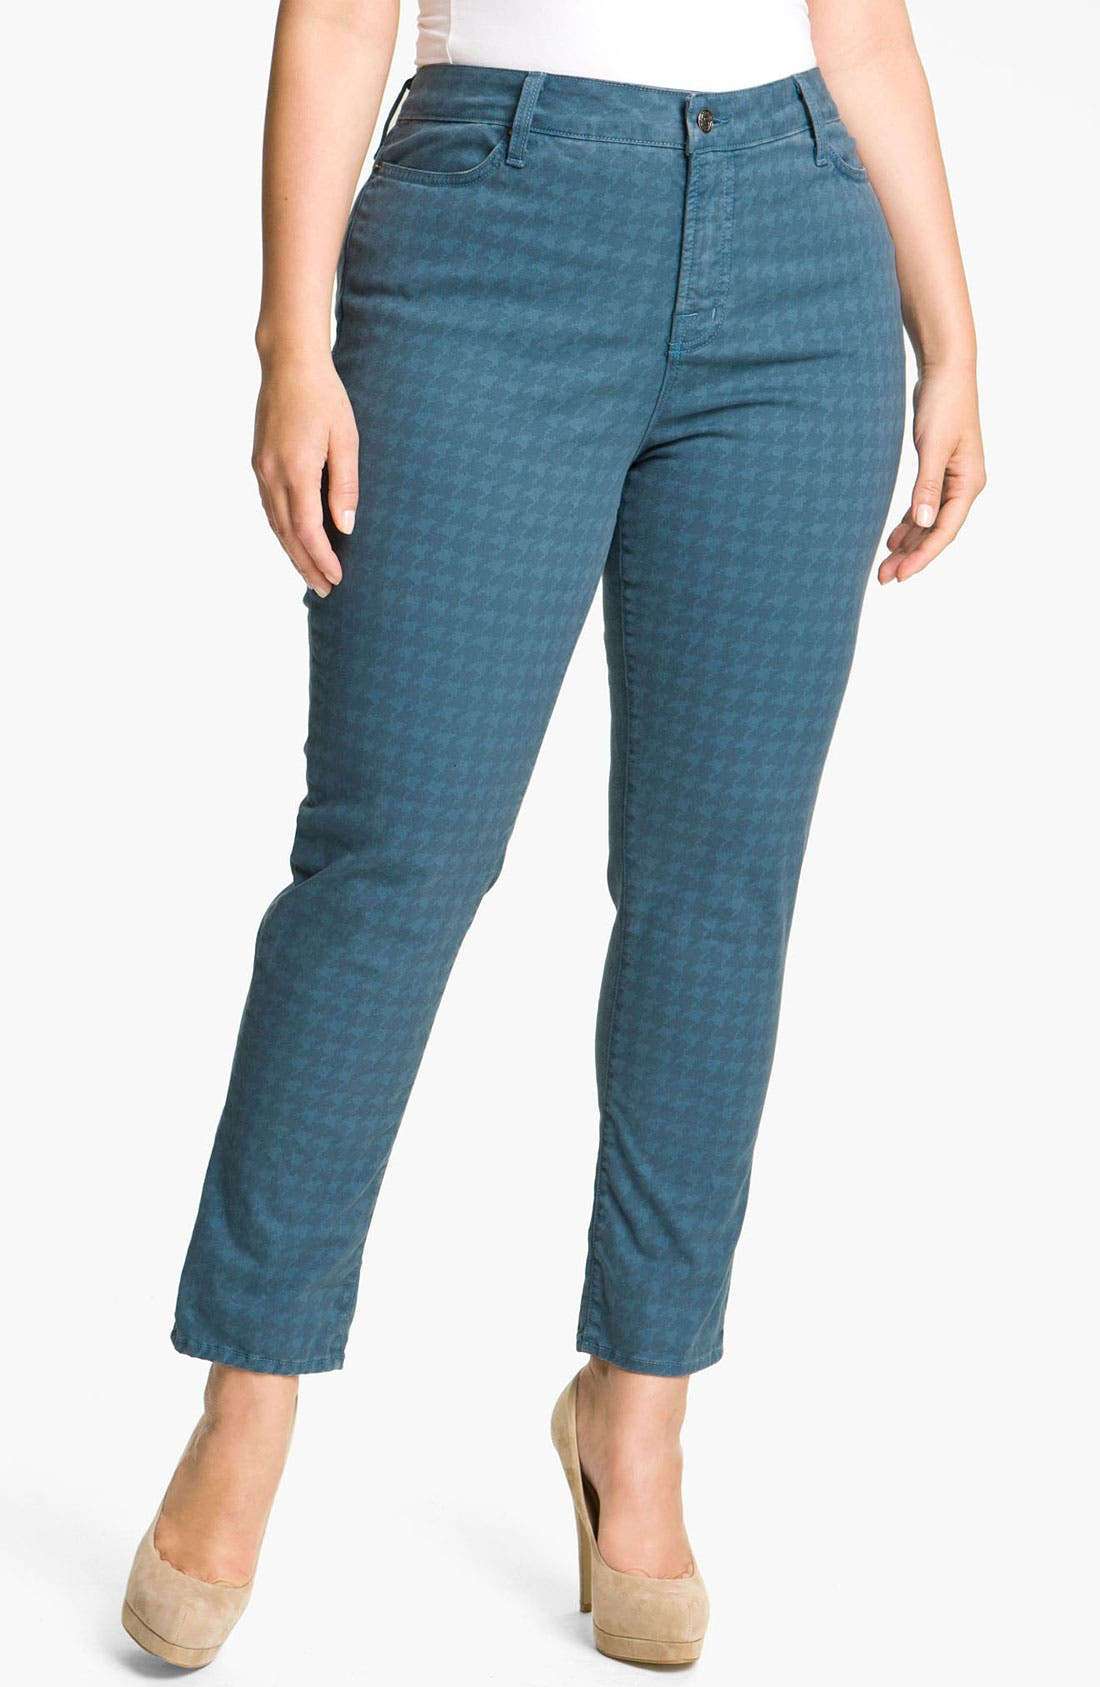 Alternate Image 3  - Blue Essence Houndstooth Twill Jeans (Plus)